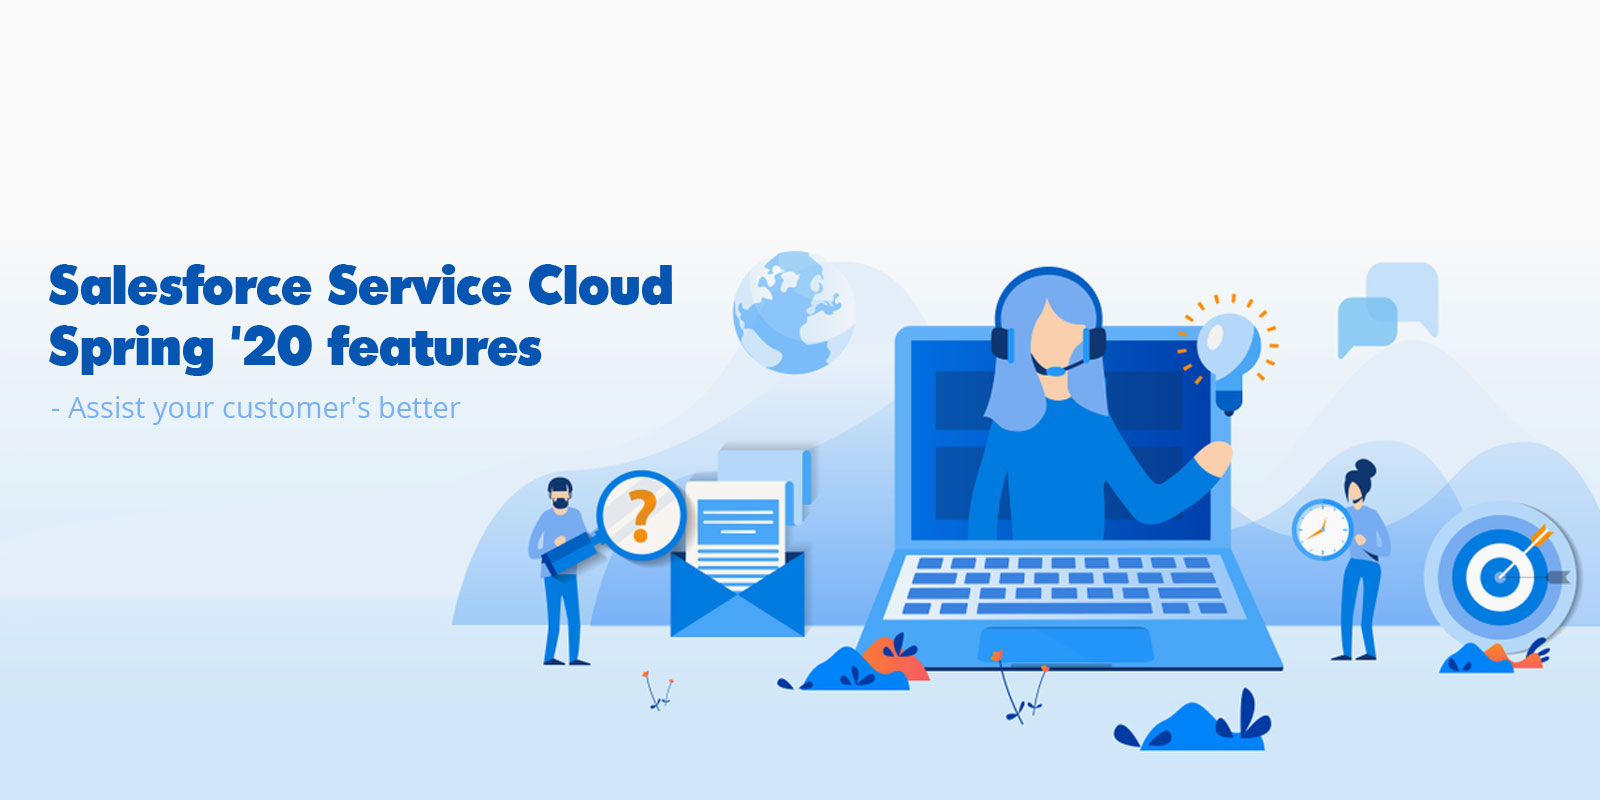 Salesforce Service Cloud Spring '20 features